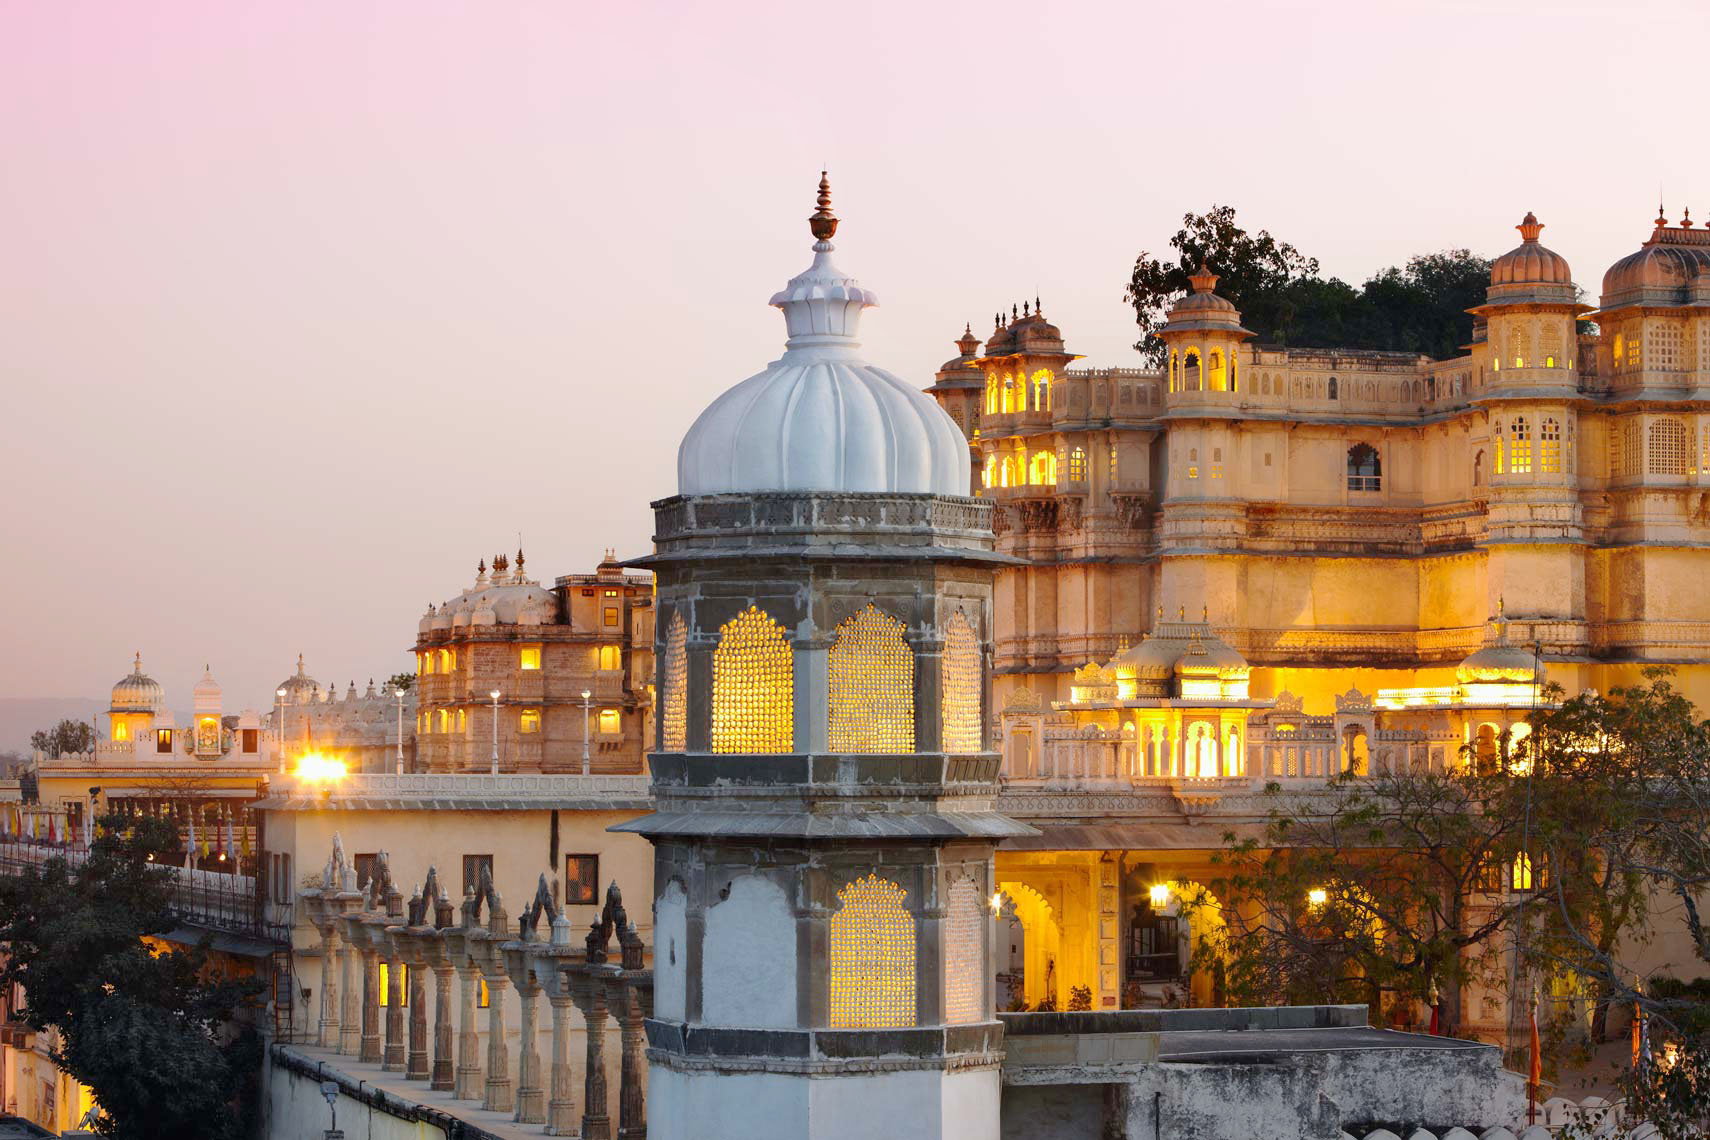 City Palace Hotel, Udaipur, Rajasthan, India